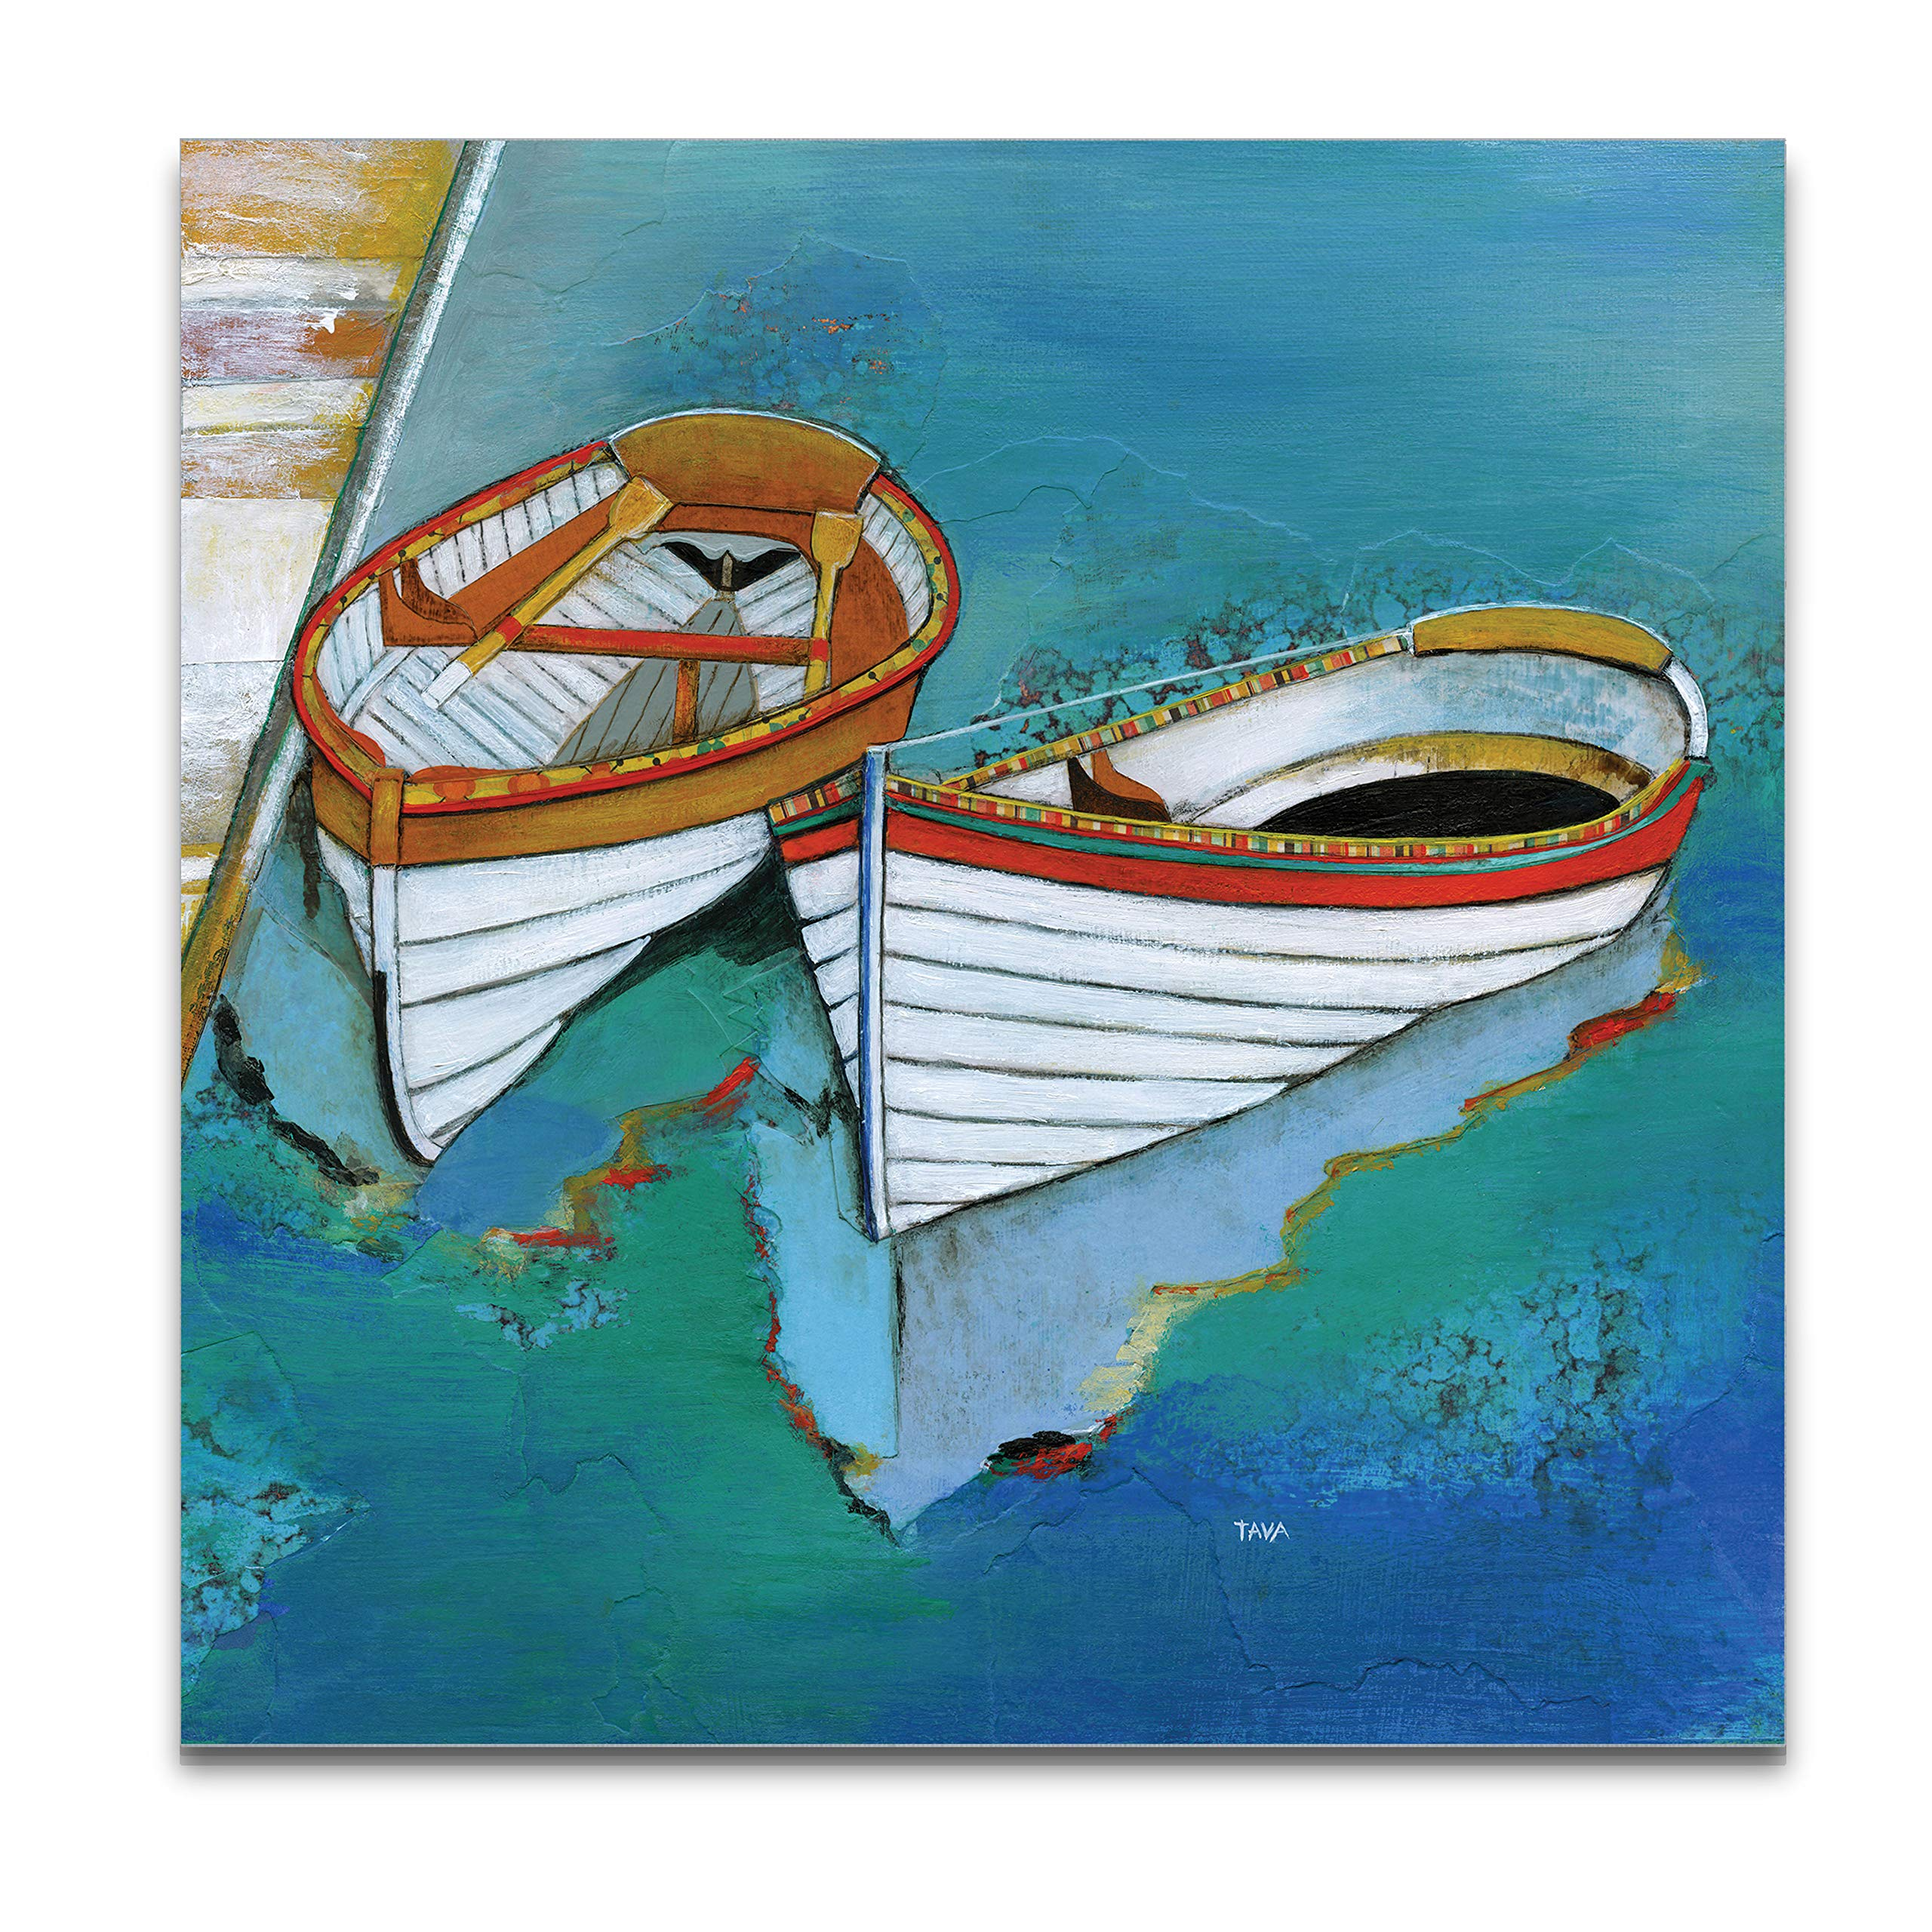 WEXFORD HOME Rowboat Reflection Gallery Wrapped Canvas Wall Art, 32x32, by WEXFORD HOME